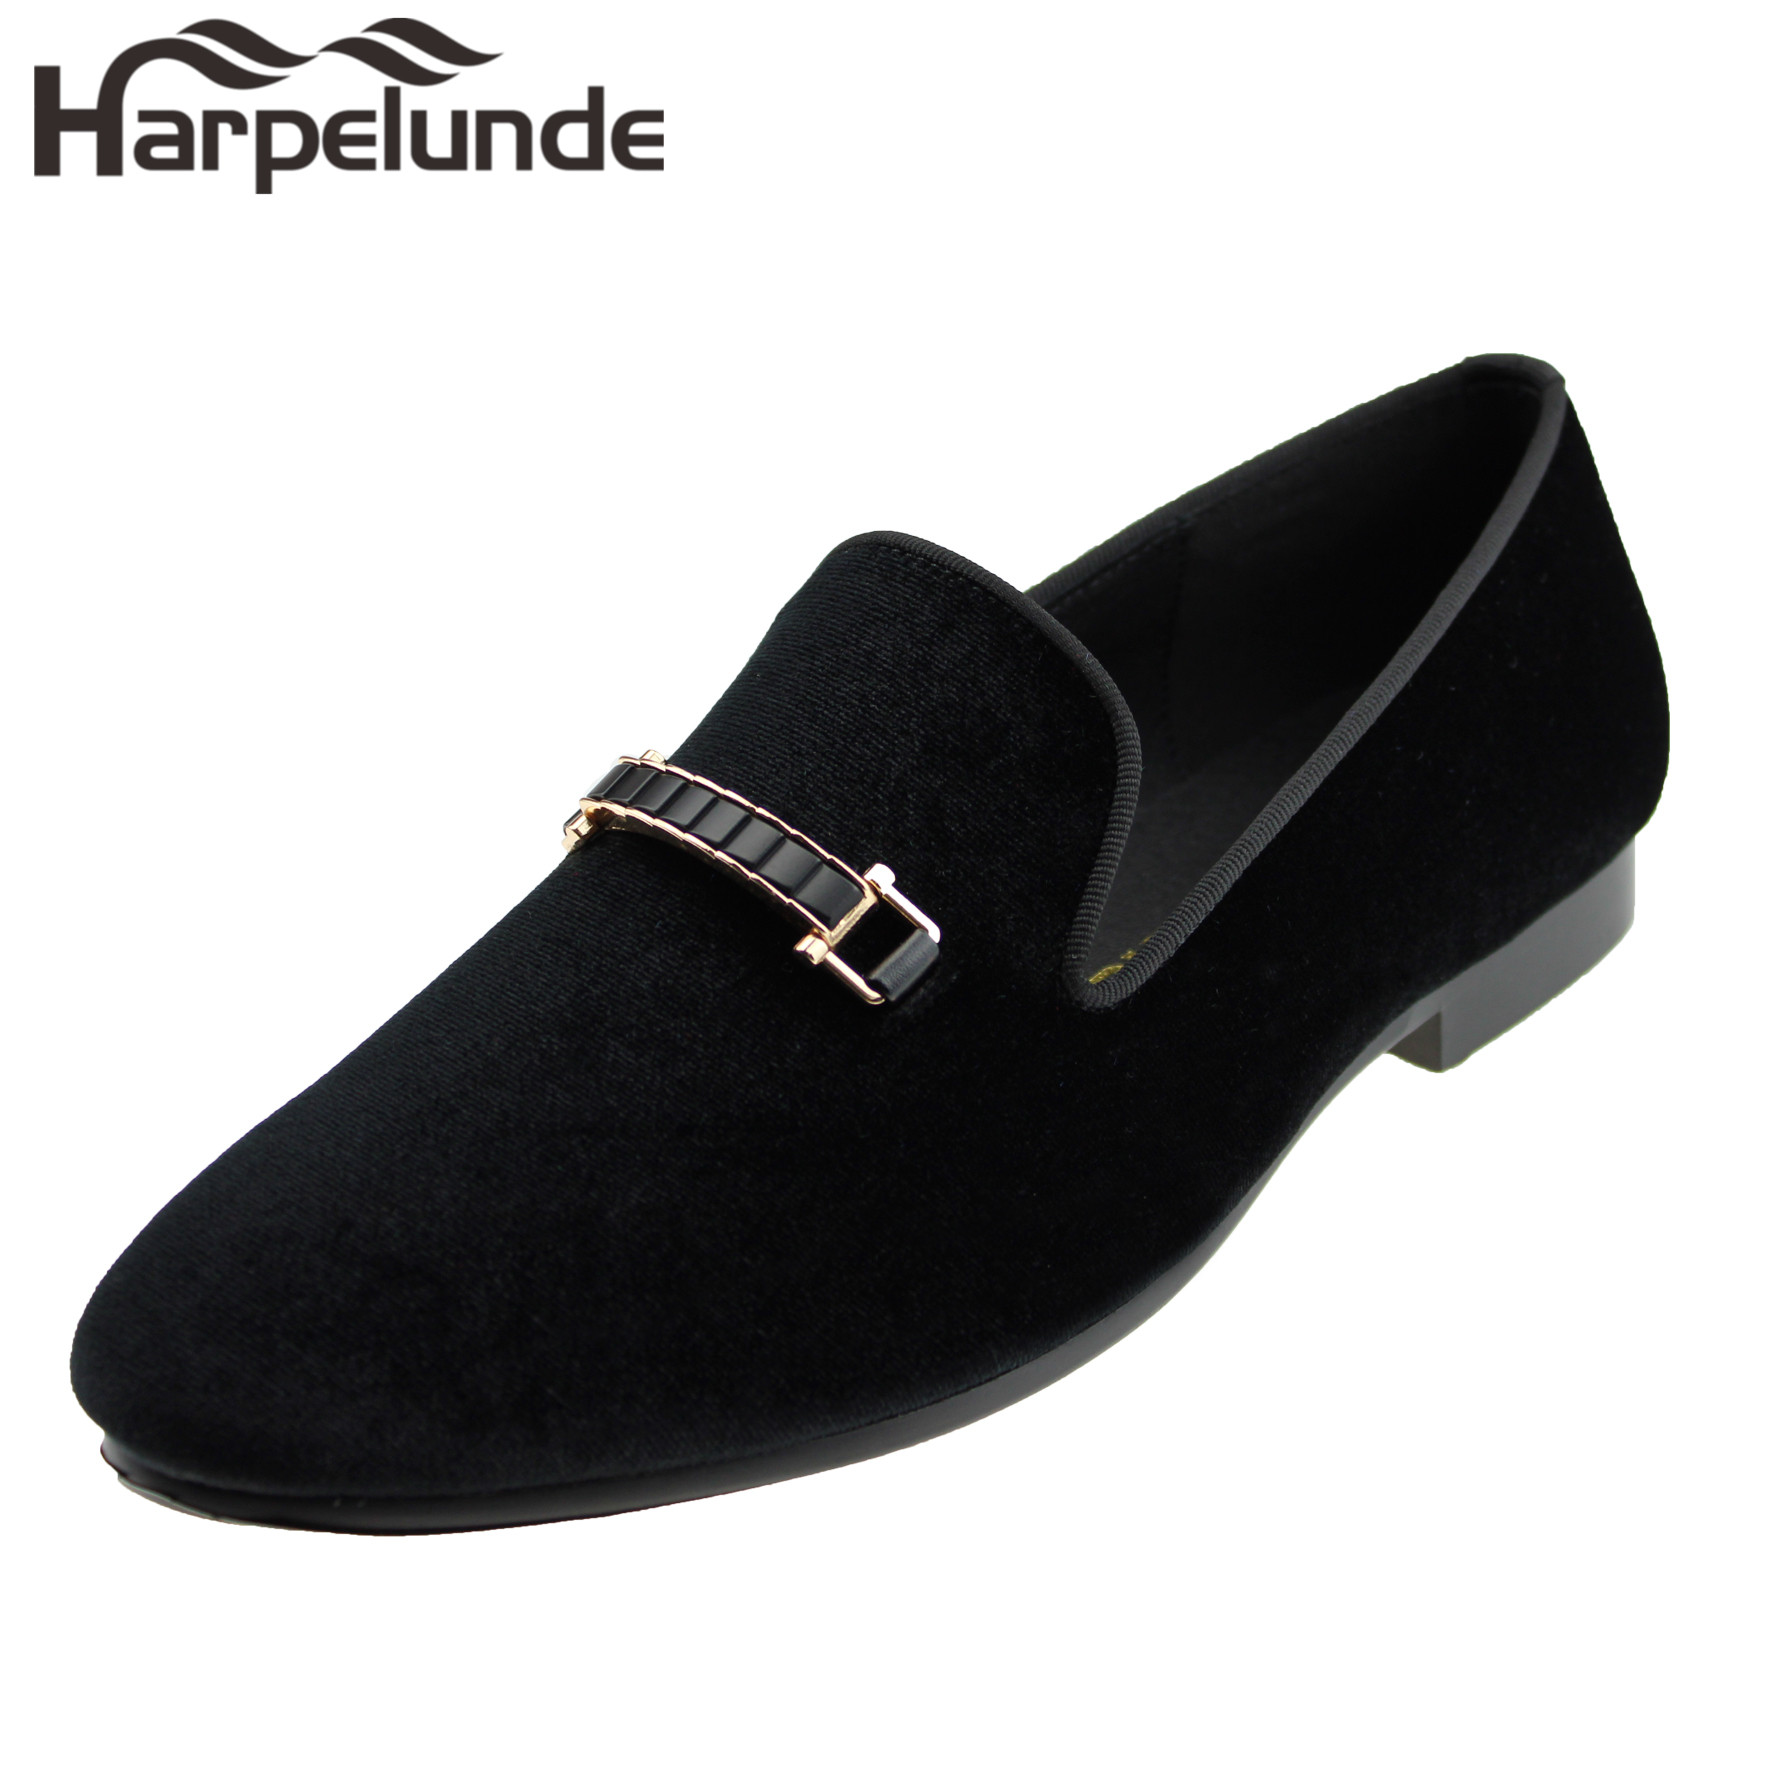 5491ebaf56ea Harpelunde Men Dress Wedding Shoes Buckle Black Velvet Loafer Slippers